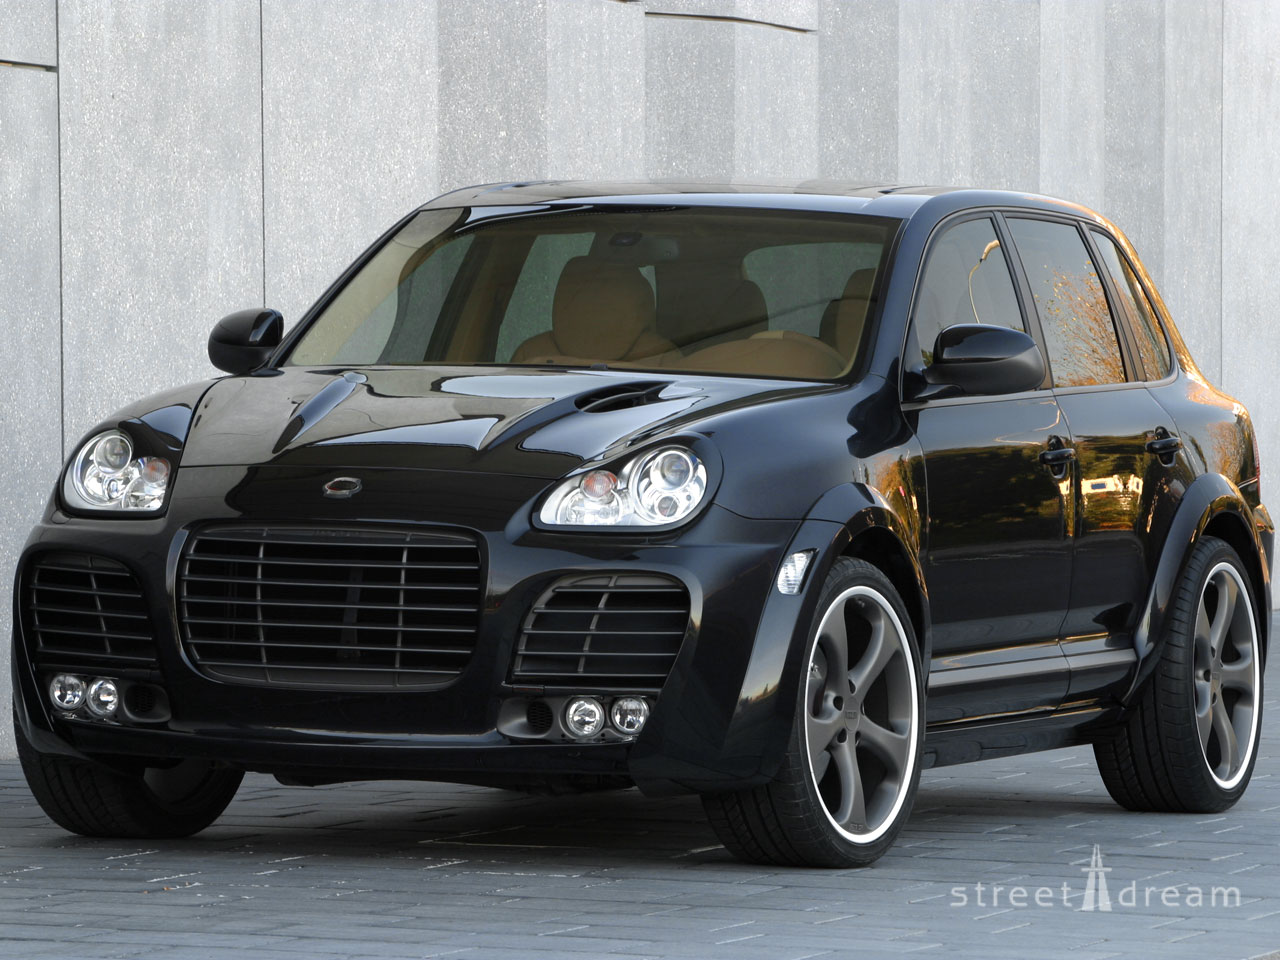 2005 porsche cayenne with Photos on Confirmed Audi Q4 Production Starts In 2019 Flagship Q8 Suv Assembly Kicks Off In 2018 additionally Porsche 997 Fuse Box Diagram 376033 as well Photos together with Watch as well Coupe2d.